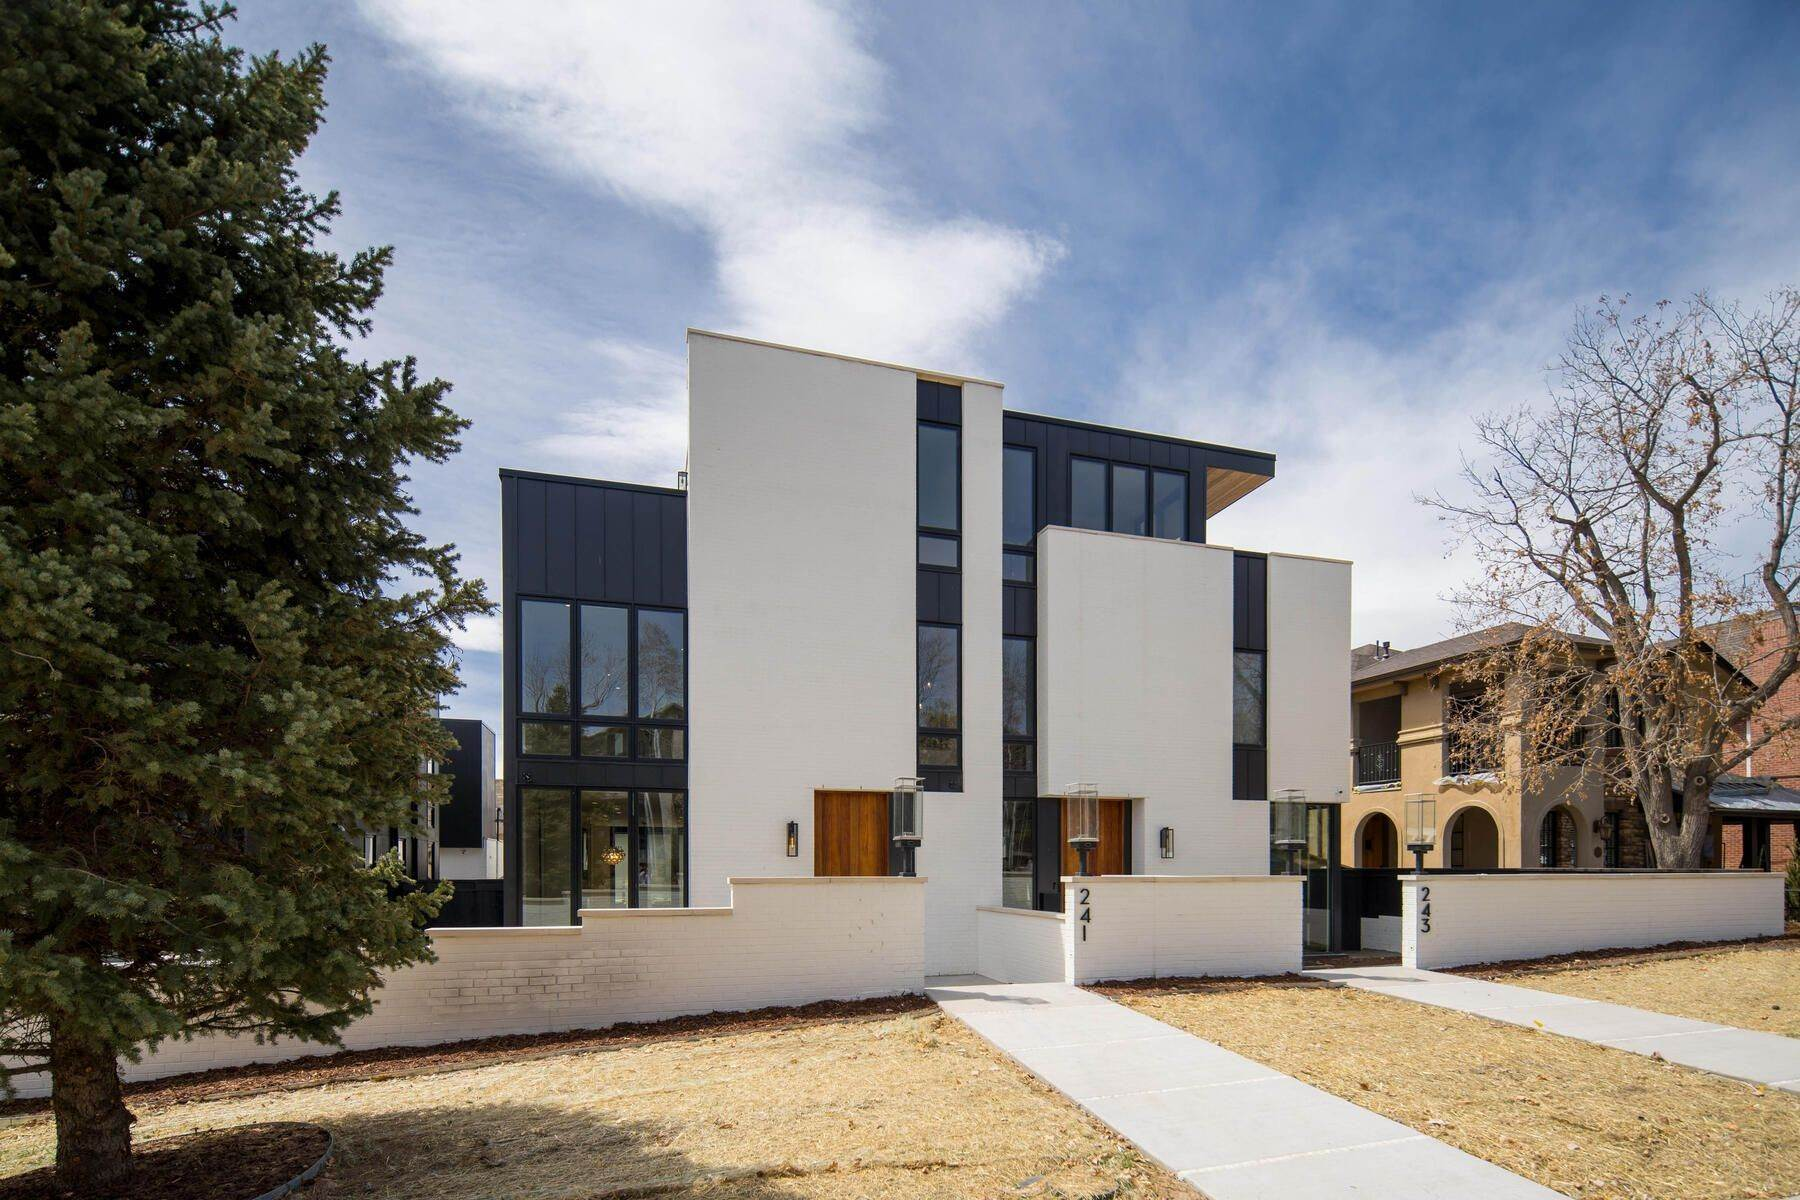 Single Family Homes for Active at Contemporary Elegance! 223 Garfield Street Denver, Colorado 80206 United States